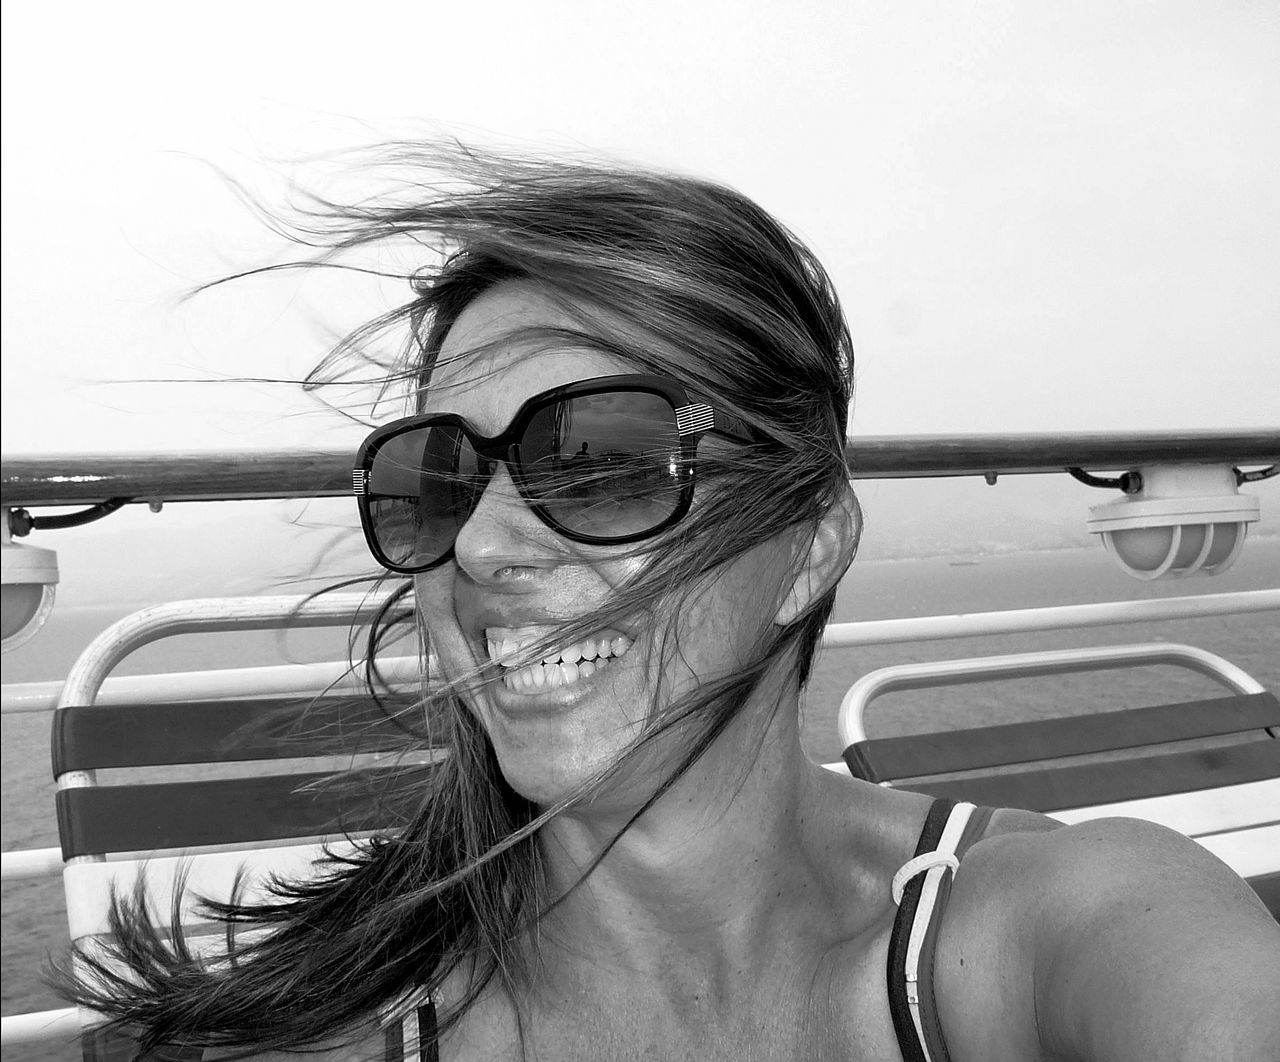 Windblown [BW] ~ Beautiful Woman Blackandwhite Close-up Cruise Daughter Day Eyeglasses  Family Front View Happy Laughing Mediterranean  One Person Outdoors People Photographer In The Shot Portrait Portrait Of A Woman Real People Smiling The Portraitist - 2017 EyeEm Awards Togetherness Windblown Young Adult Young Women